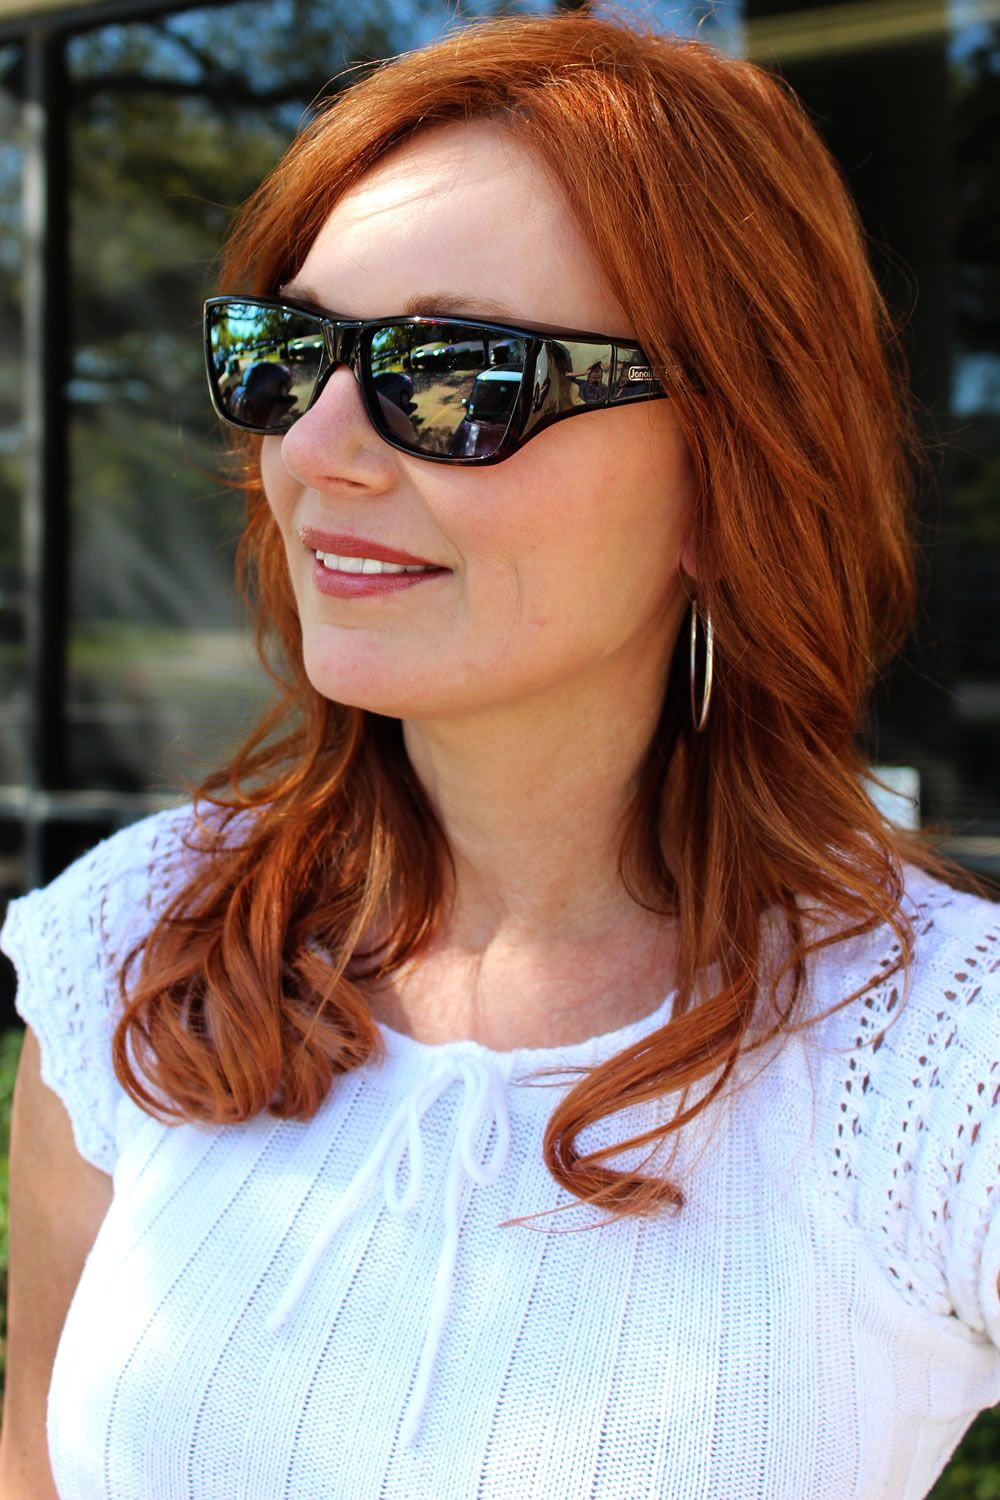 872f0aefa3 Neera Leopard Black Fitover Sunglasses by Jonathan Paul® are the perfect  sunwear solution for those struggling to protect their eyes from harmful UV  rays ...